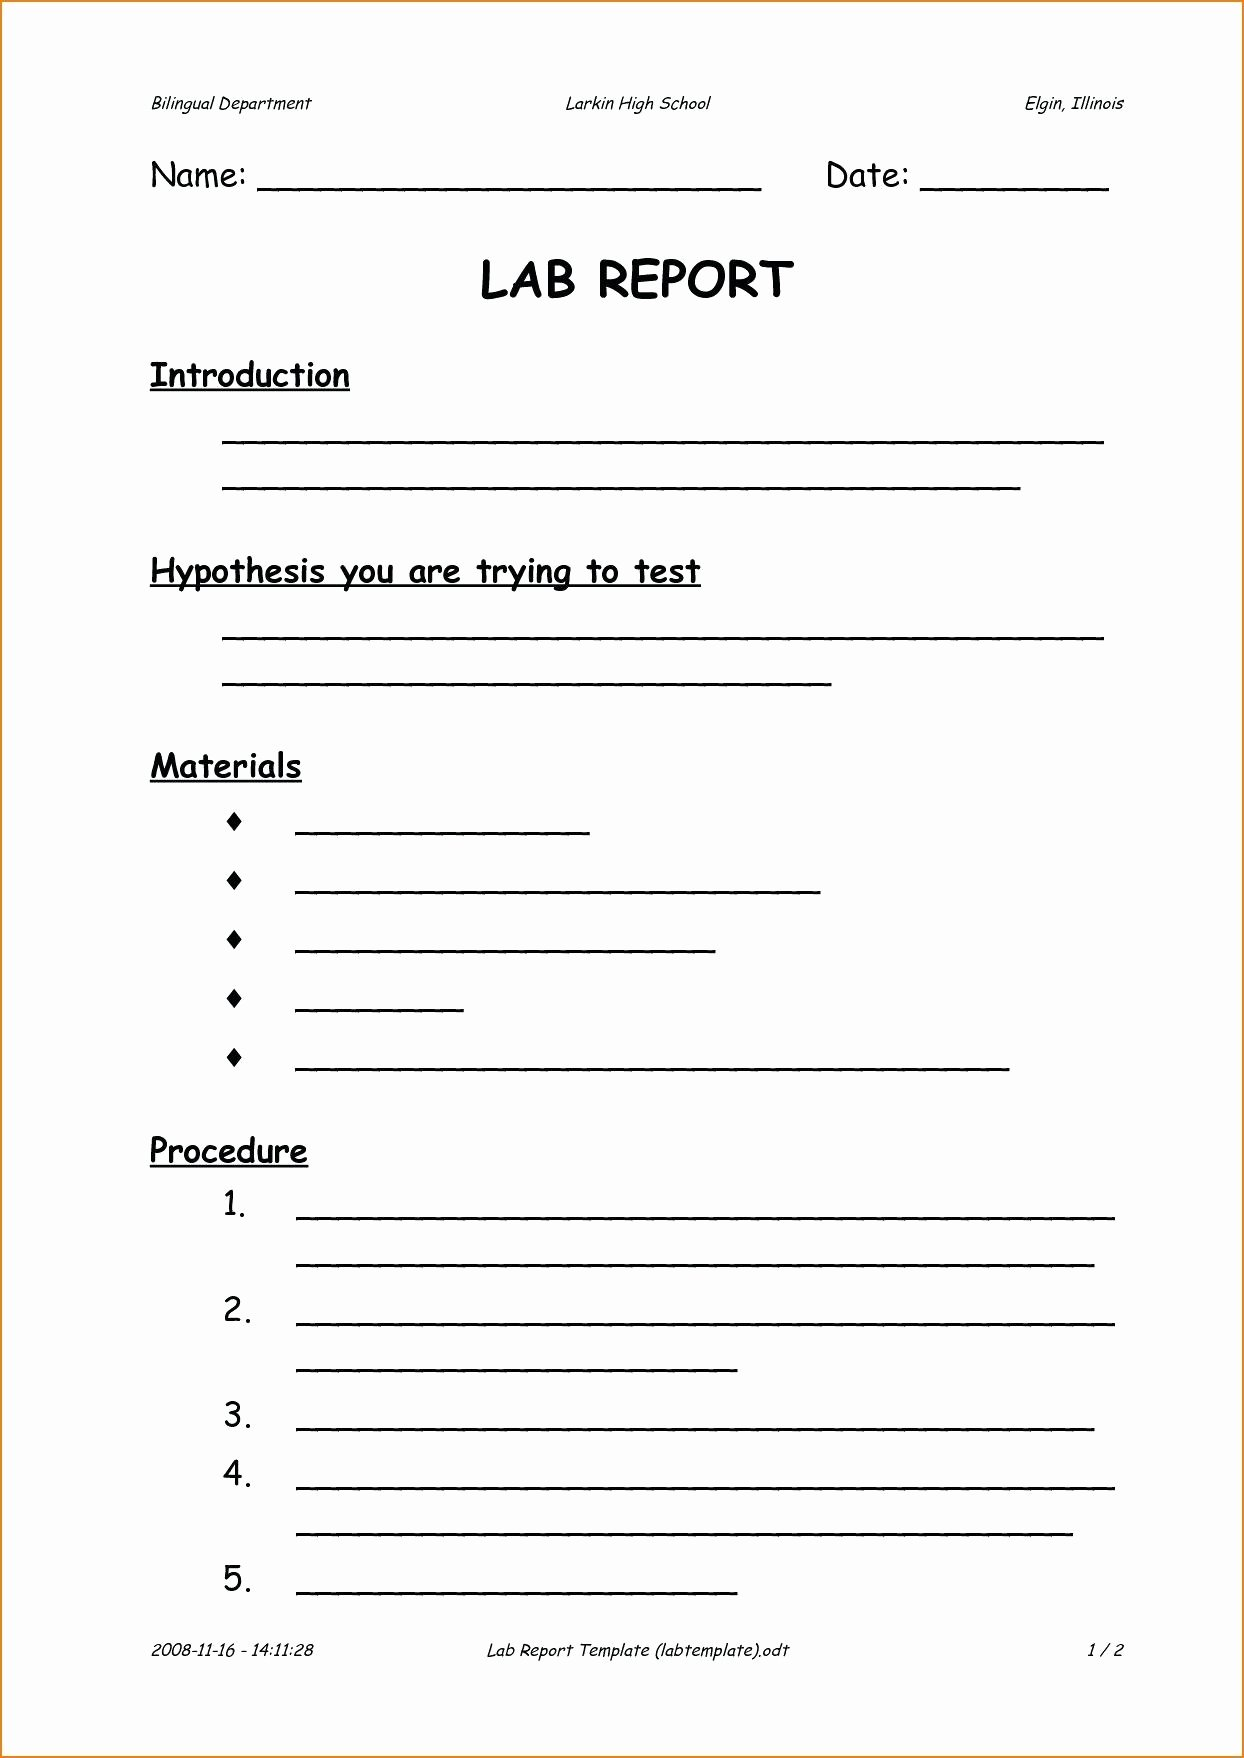 Lab Report Template Middle School Luxury Scientific Method Activity High School – Naturyub